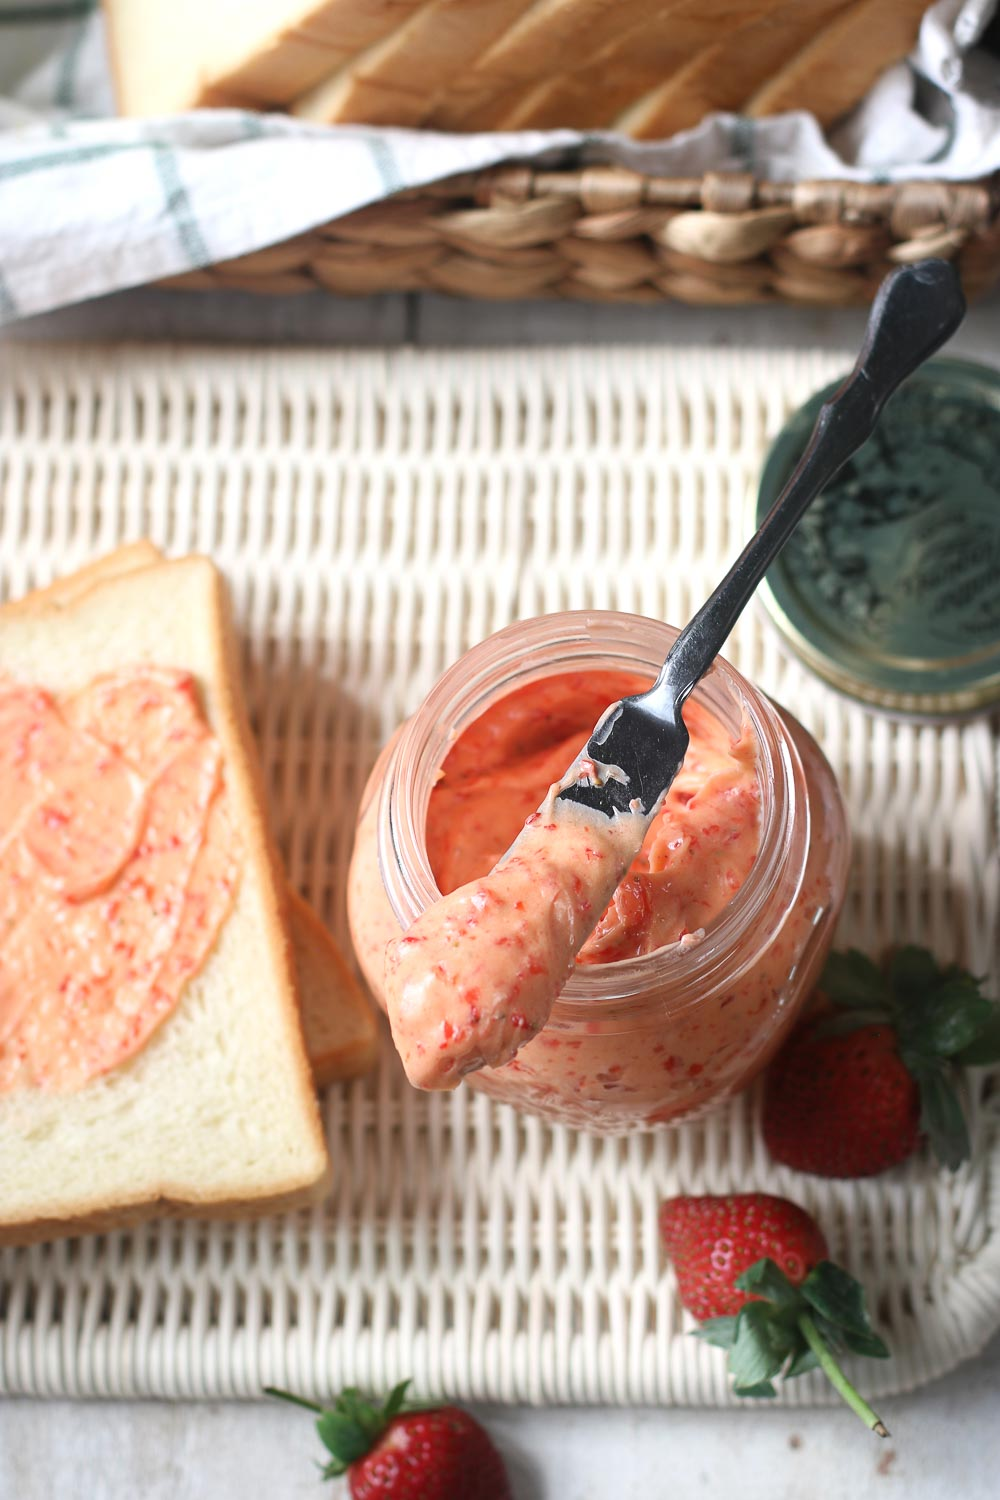 Fresh Strawberry Butter. A simple but delicious spread that goes well with so many things - french toast, muffins, croissants, and so much more. It only takes 3 ingredients and 5 minutes to make this strawberry butter.